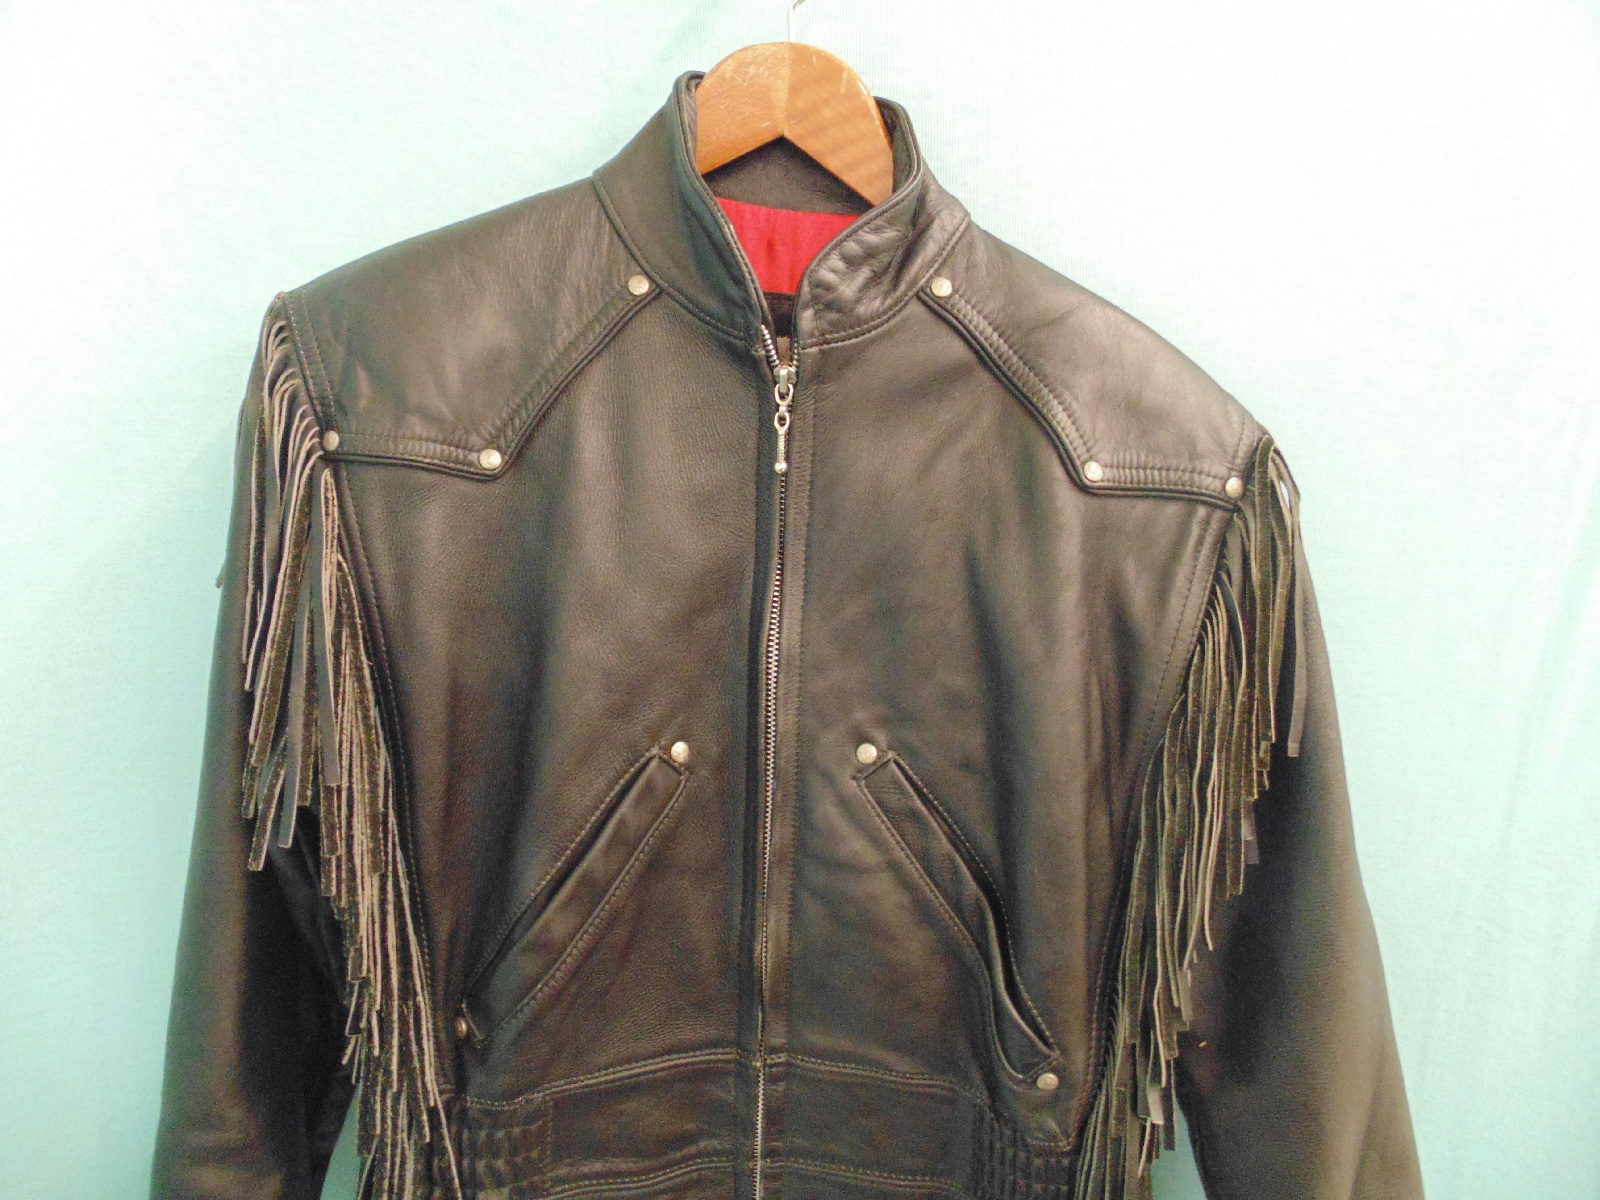 Details about Harley Davidson Women's XS Leather Jacket With Fringe